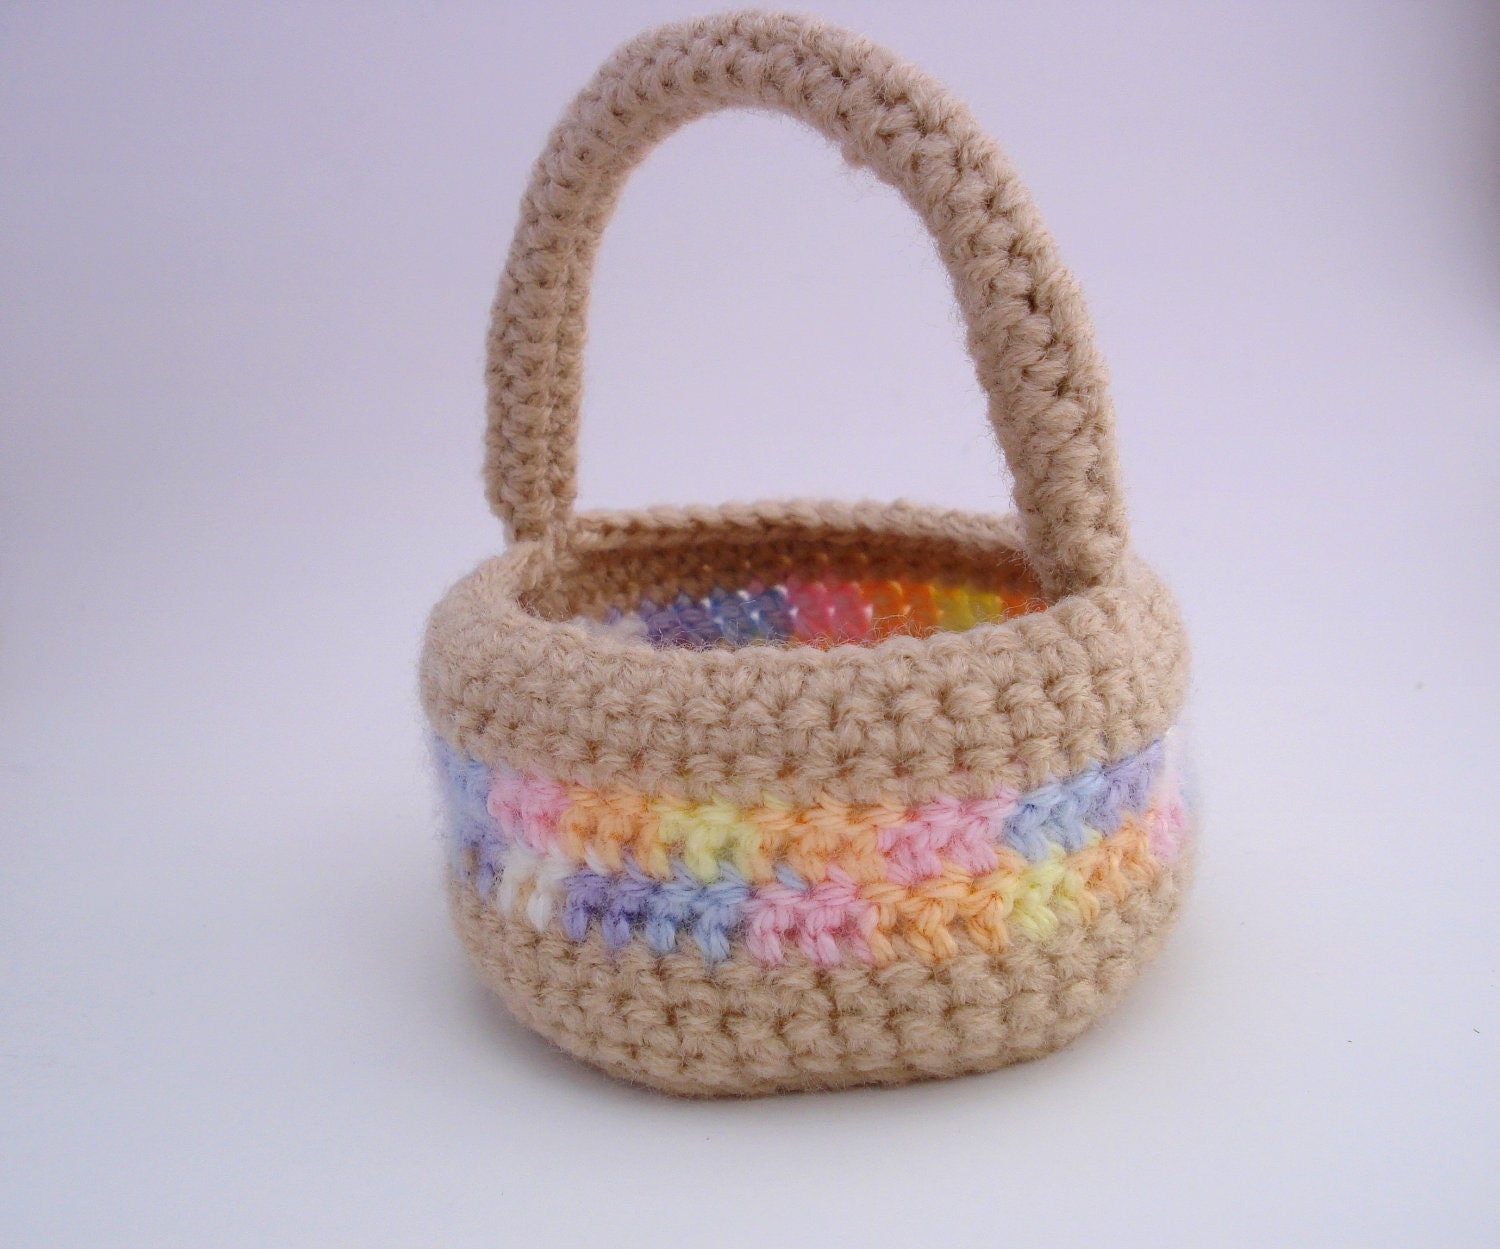 Crochet Easter Basket : Crocheted Easter Basket Multi Band by paigemoore88 on Etsy